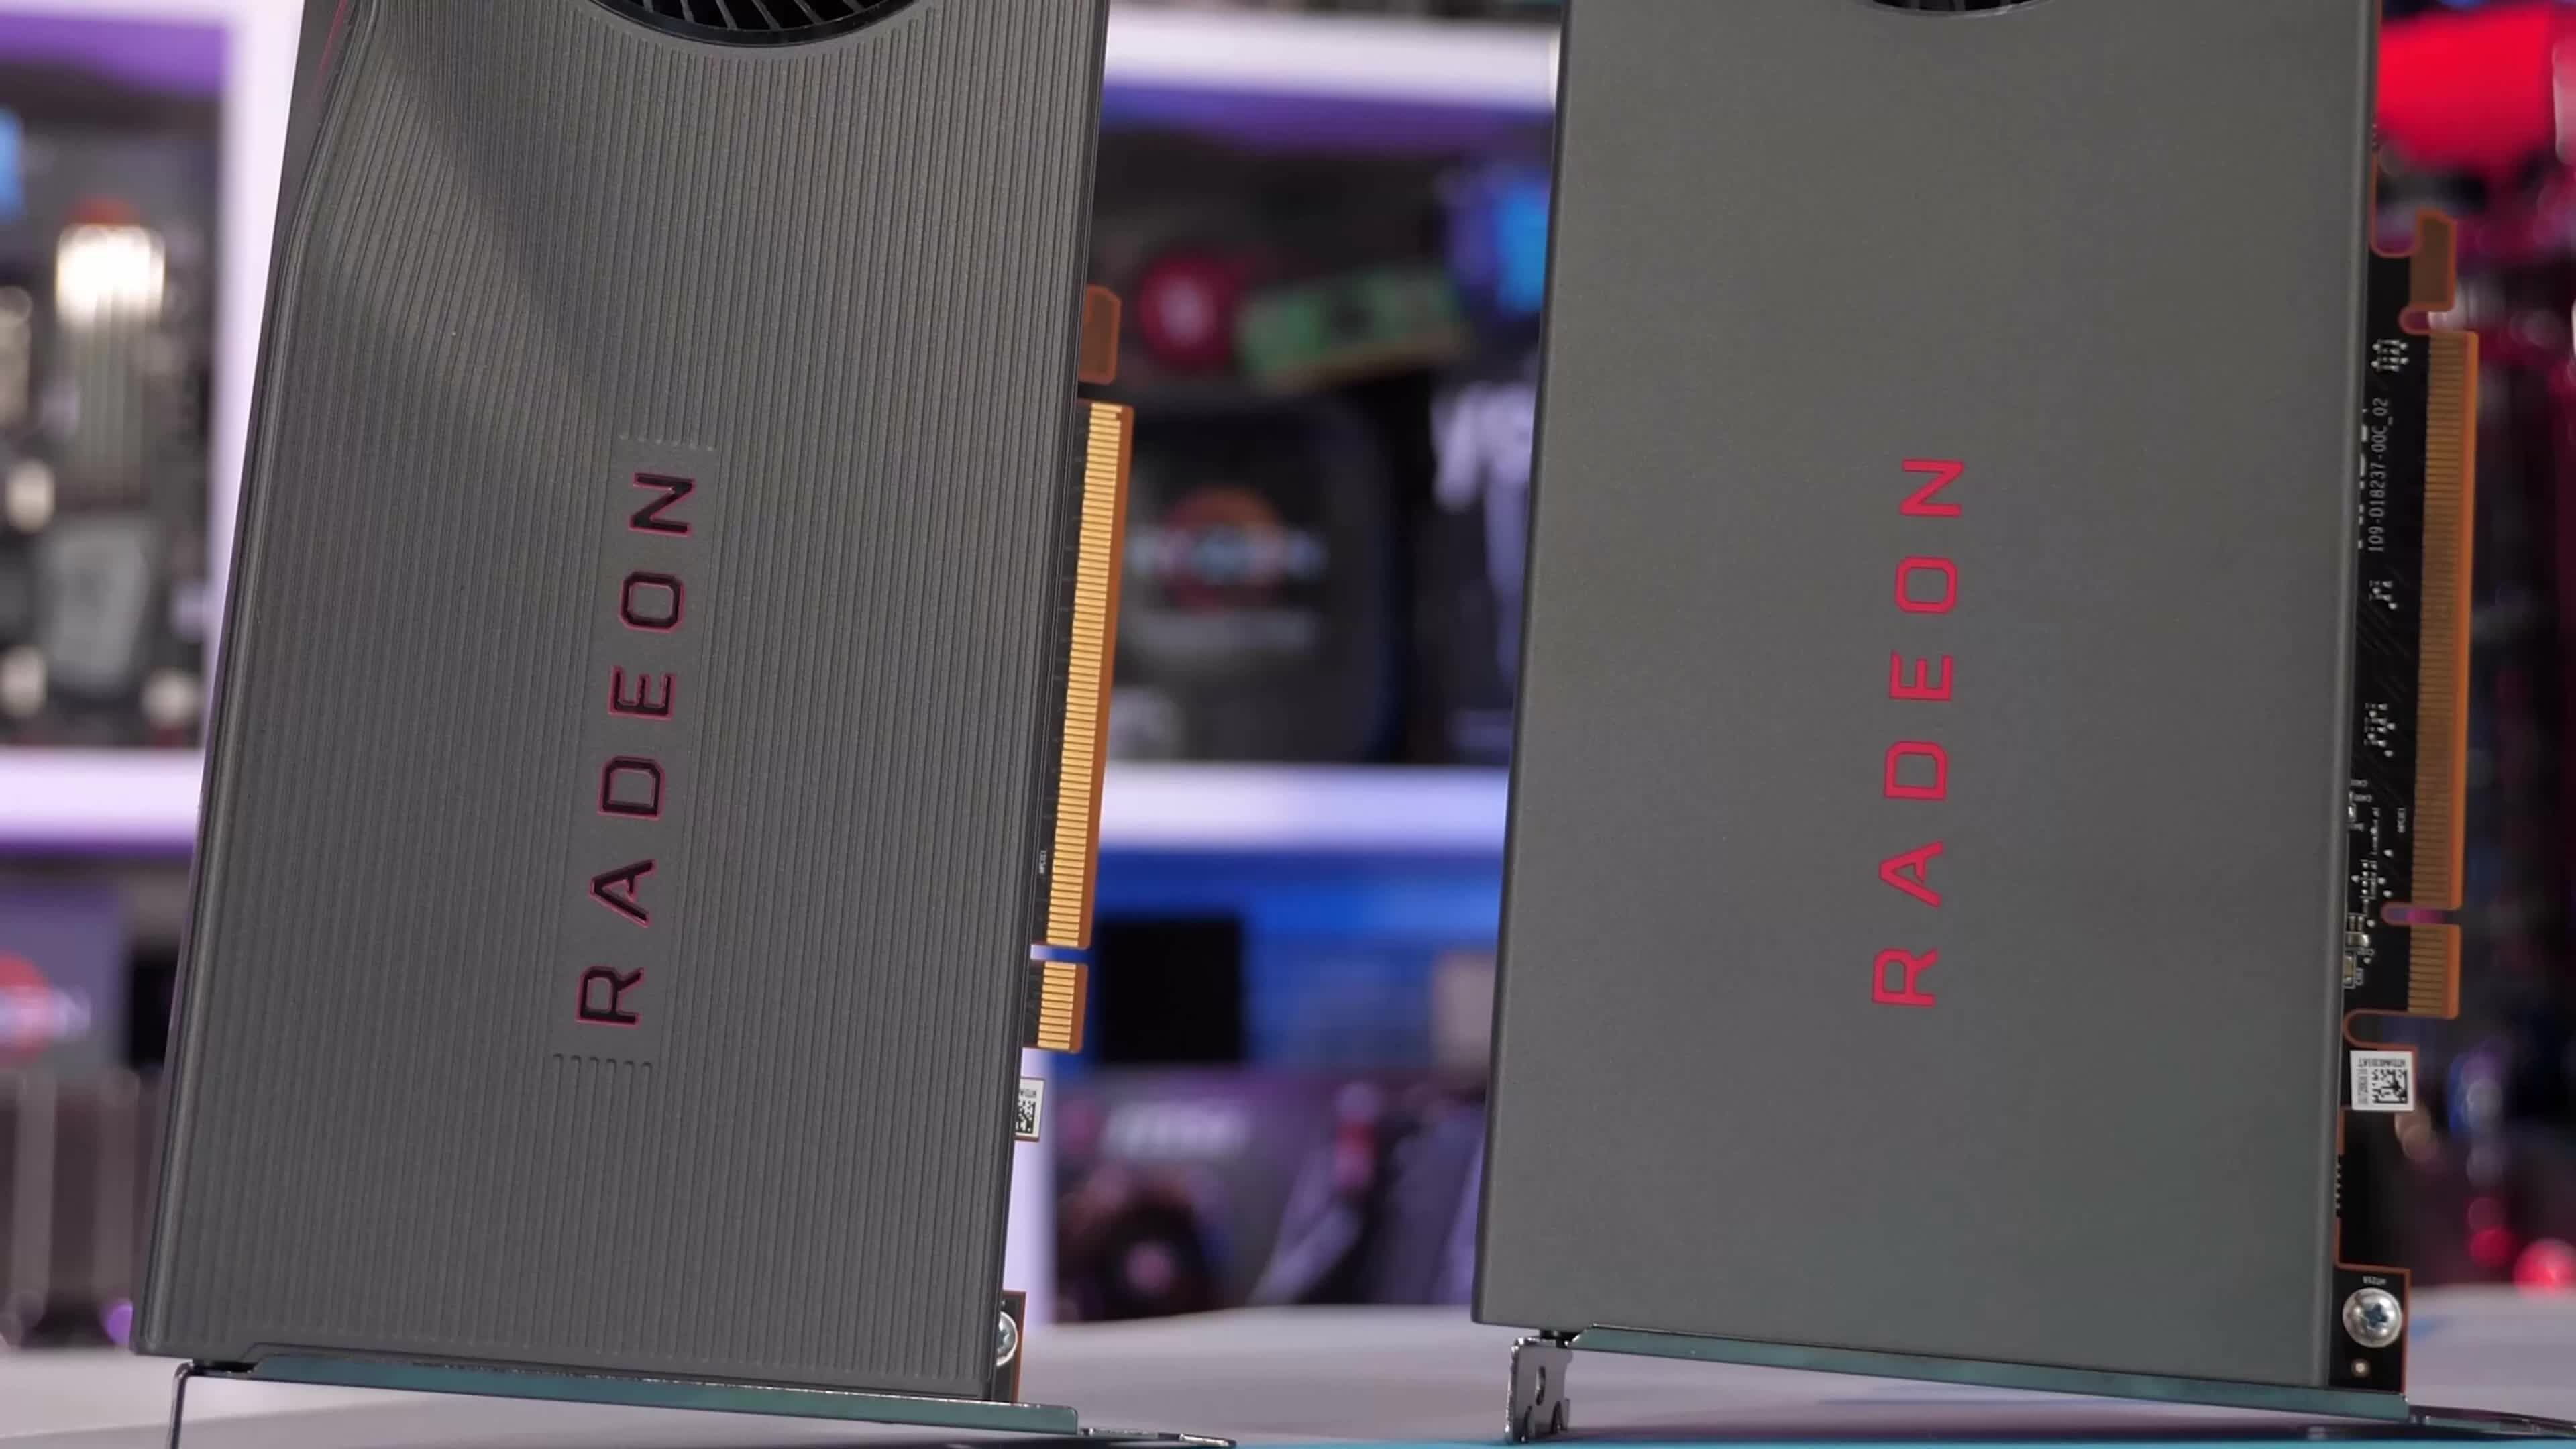 No, AMD isn't discontinuing the Radeon RX 5700 series